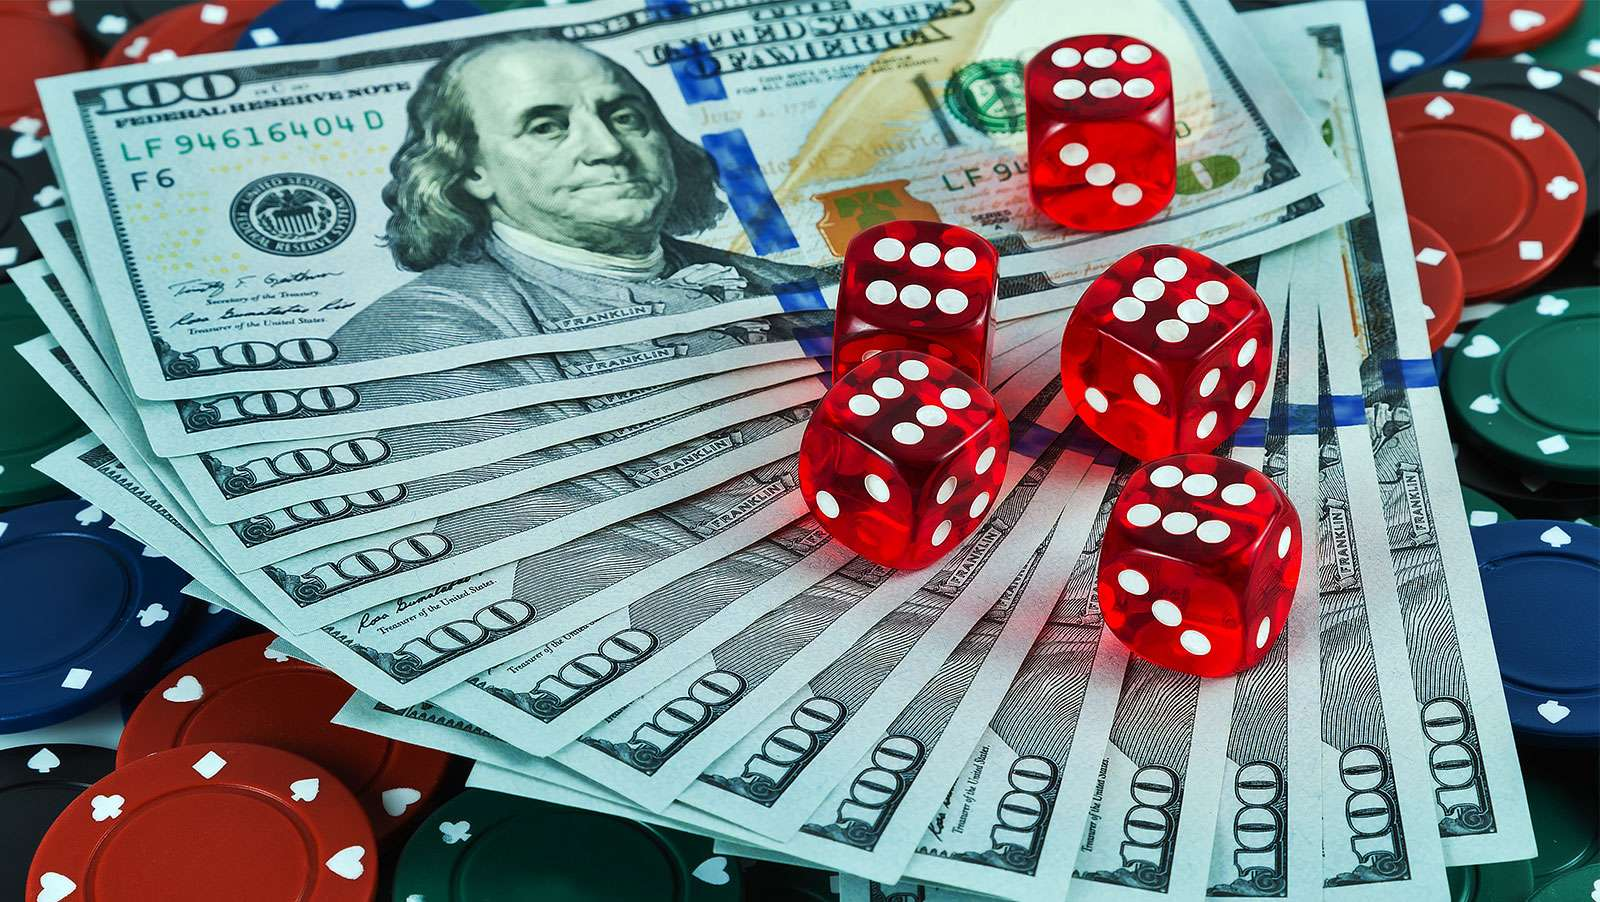 How Online Gambling Has Changed In The Last Two Decades